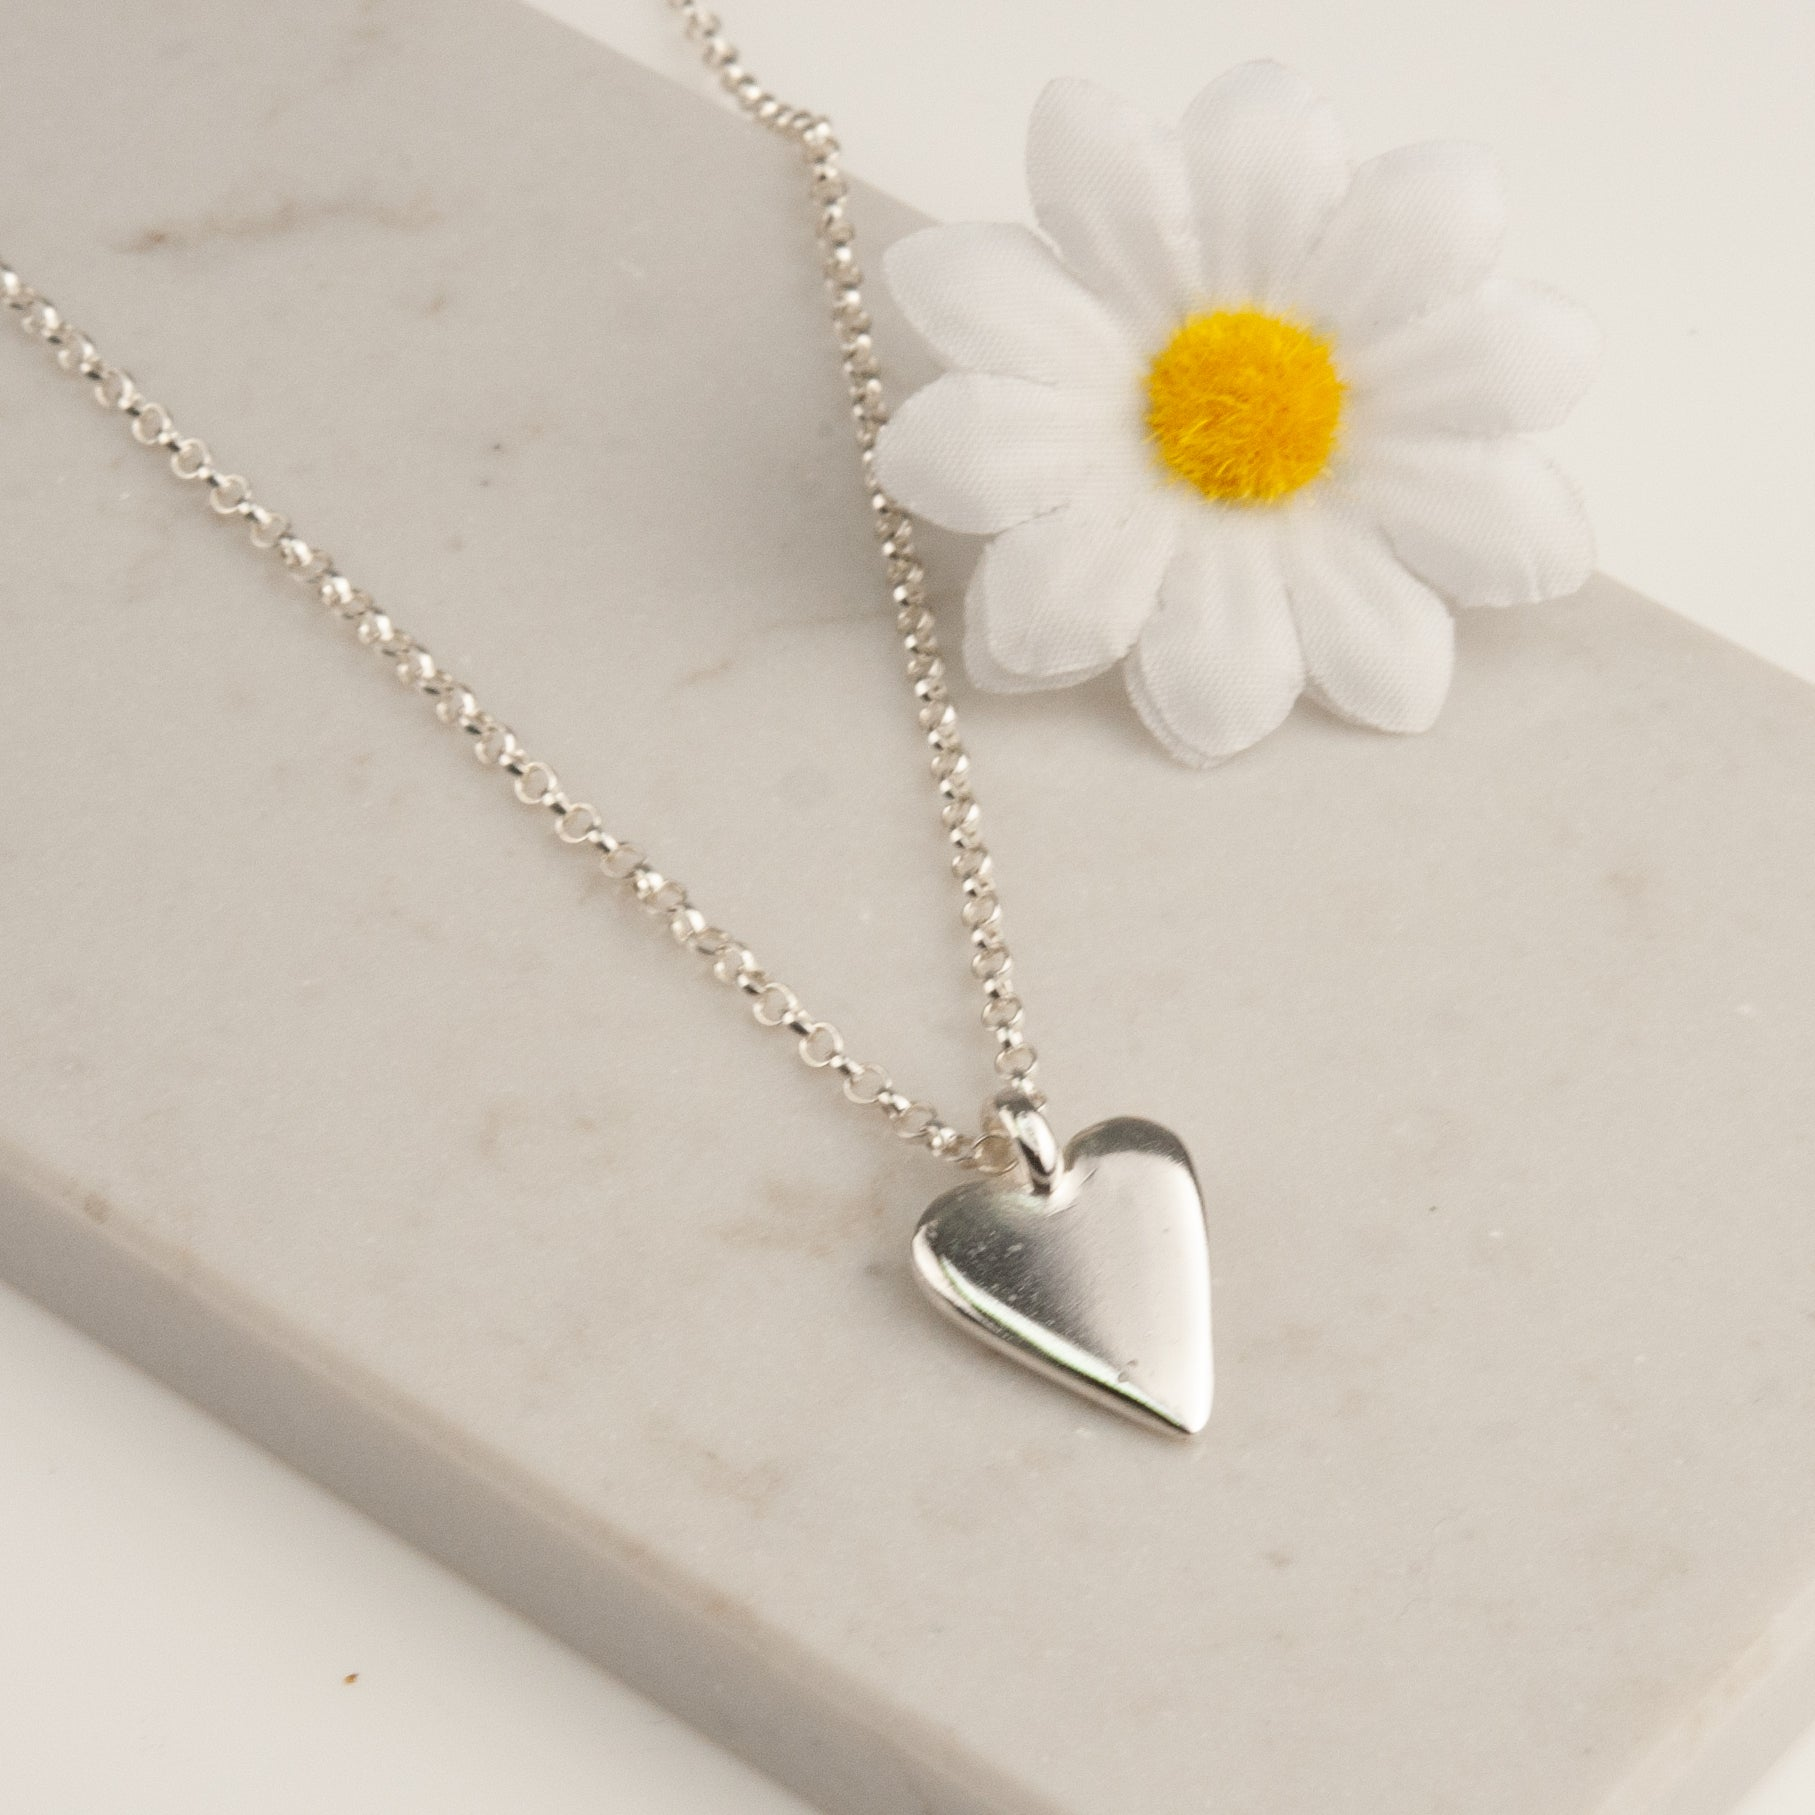 Belle & Bee Belcher necklace with Midi heart charm